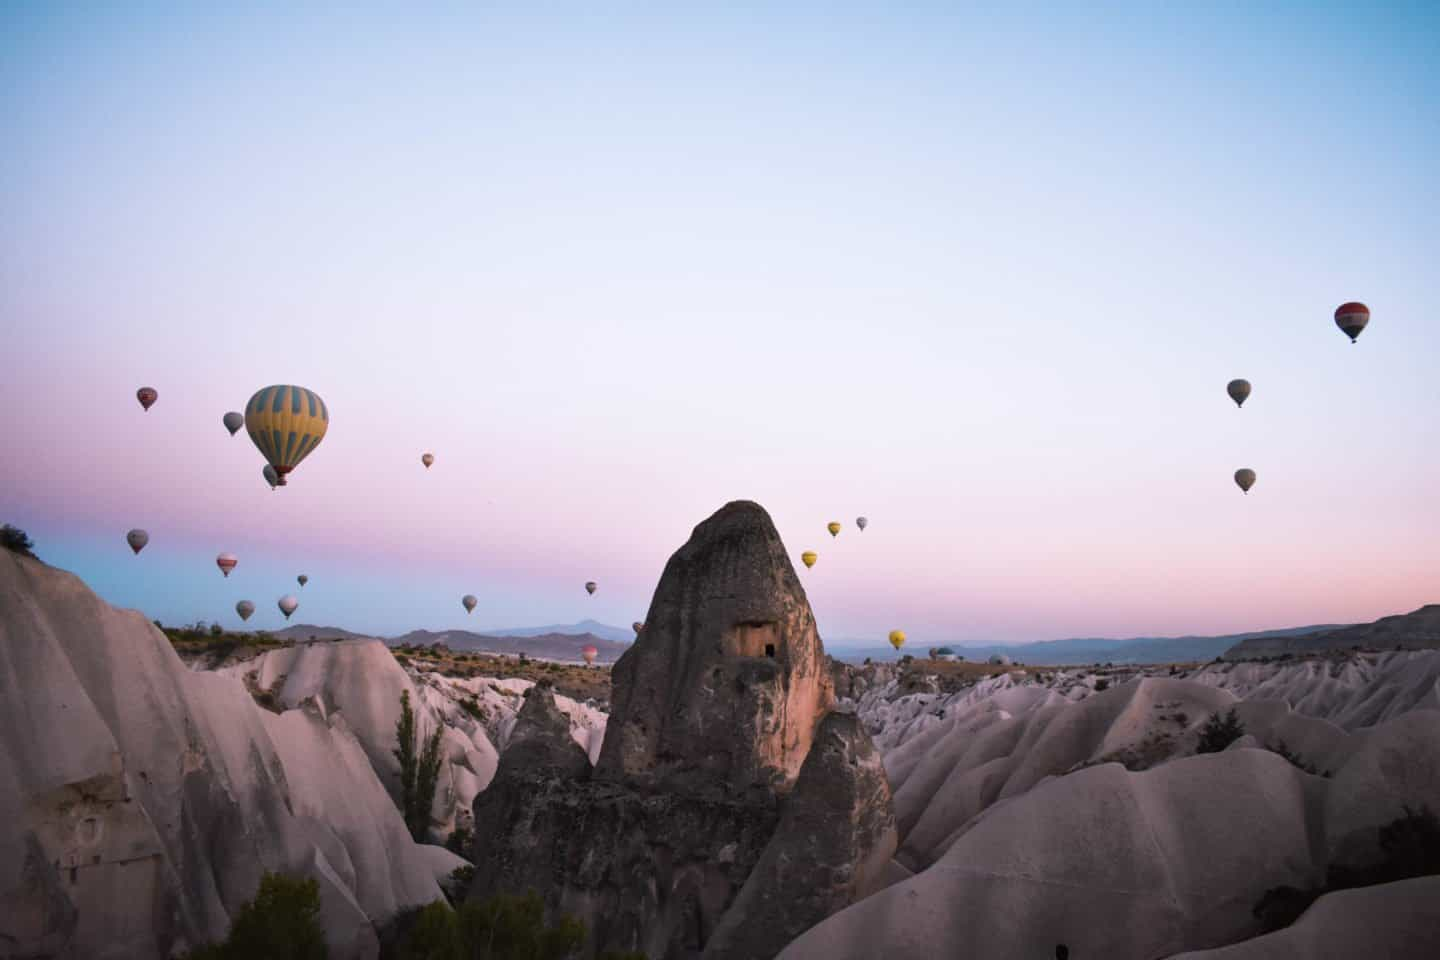 hot air balloon ride over Cappadocia at sunrise